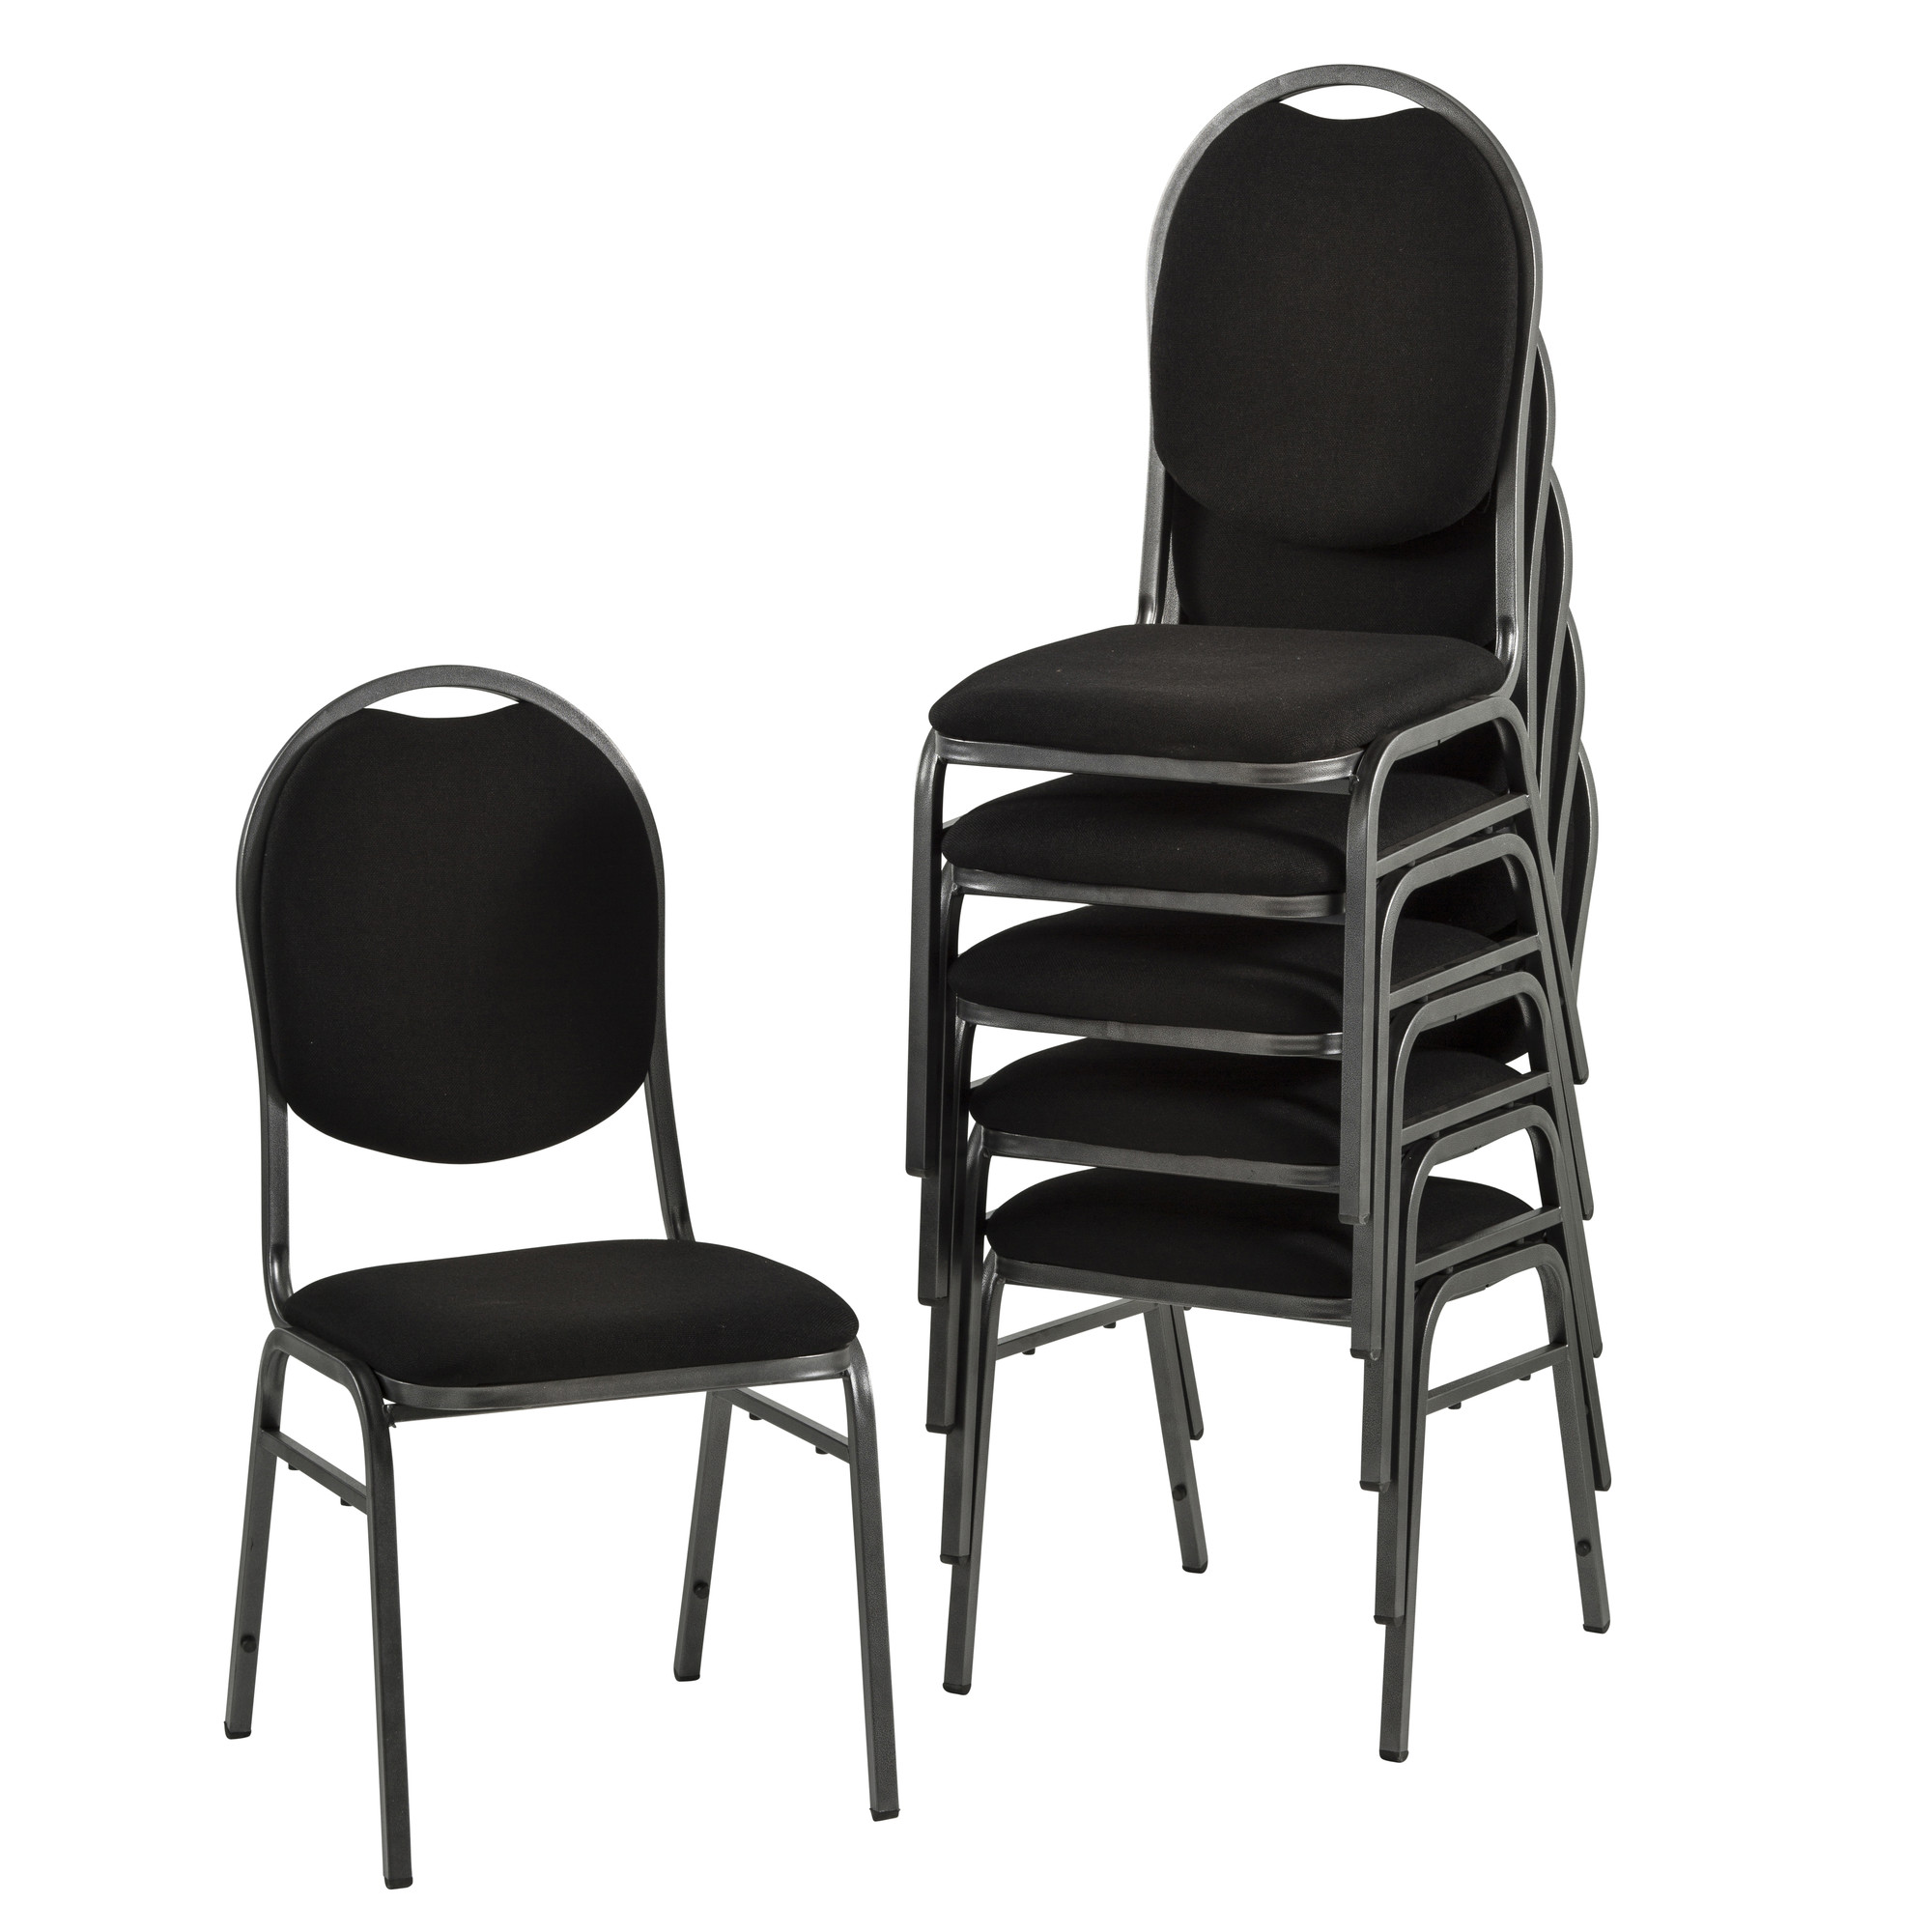 Fit Chair Premium Stackable Office Visitor Conference Chairs